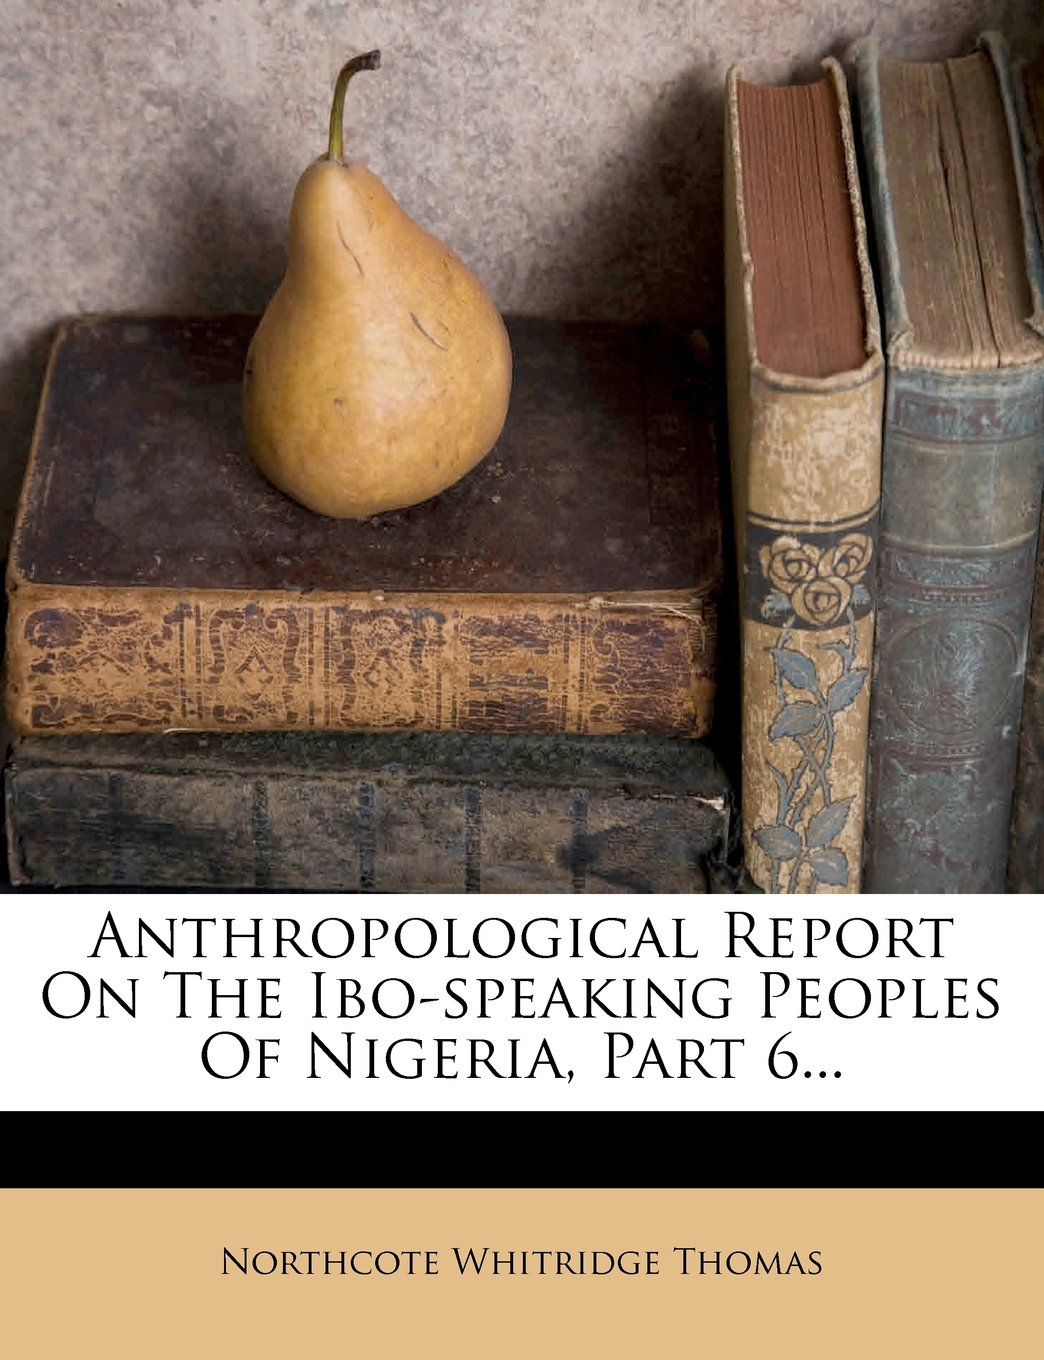 Anthropological Report On The Ibo-speaking Peoples Of Nigeria, Part 6... ebook